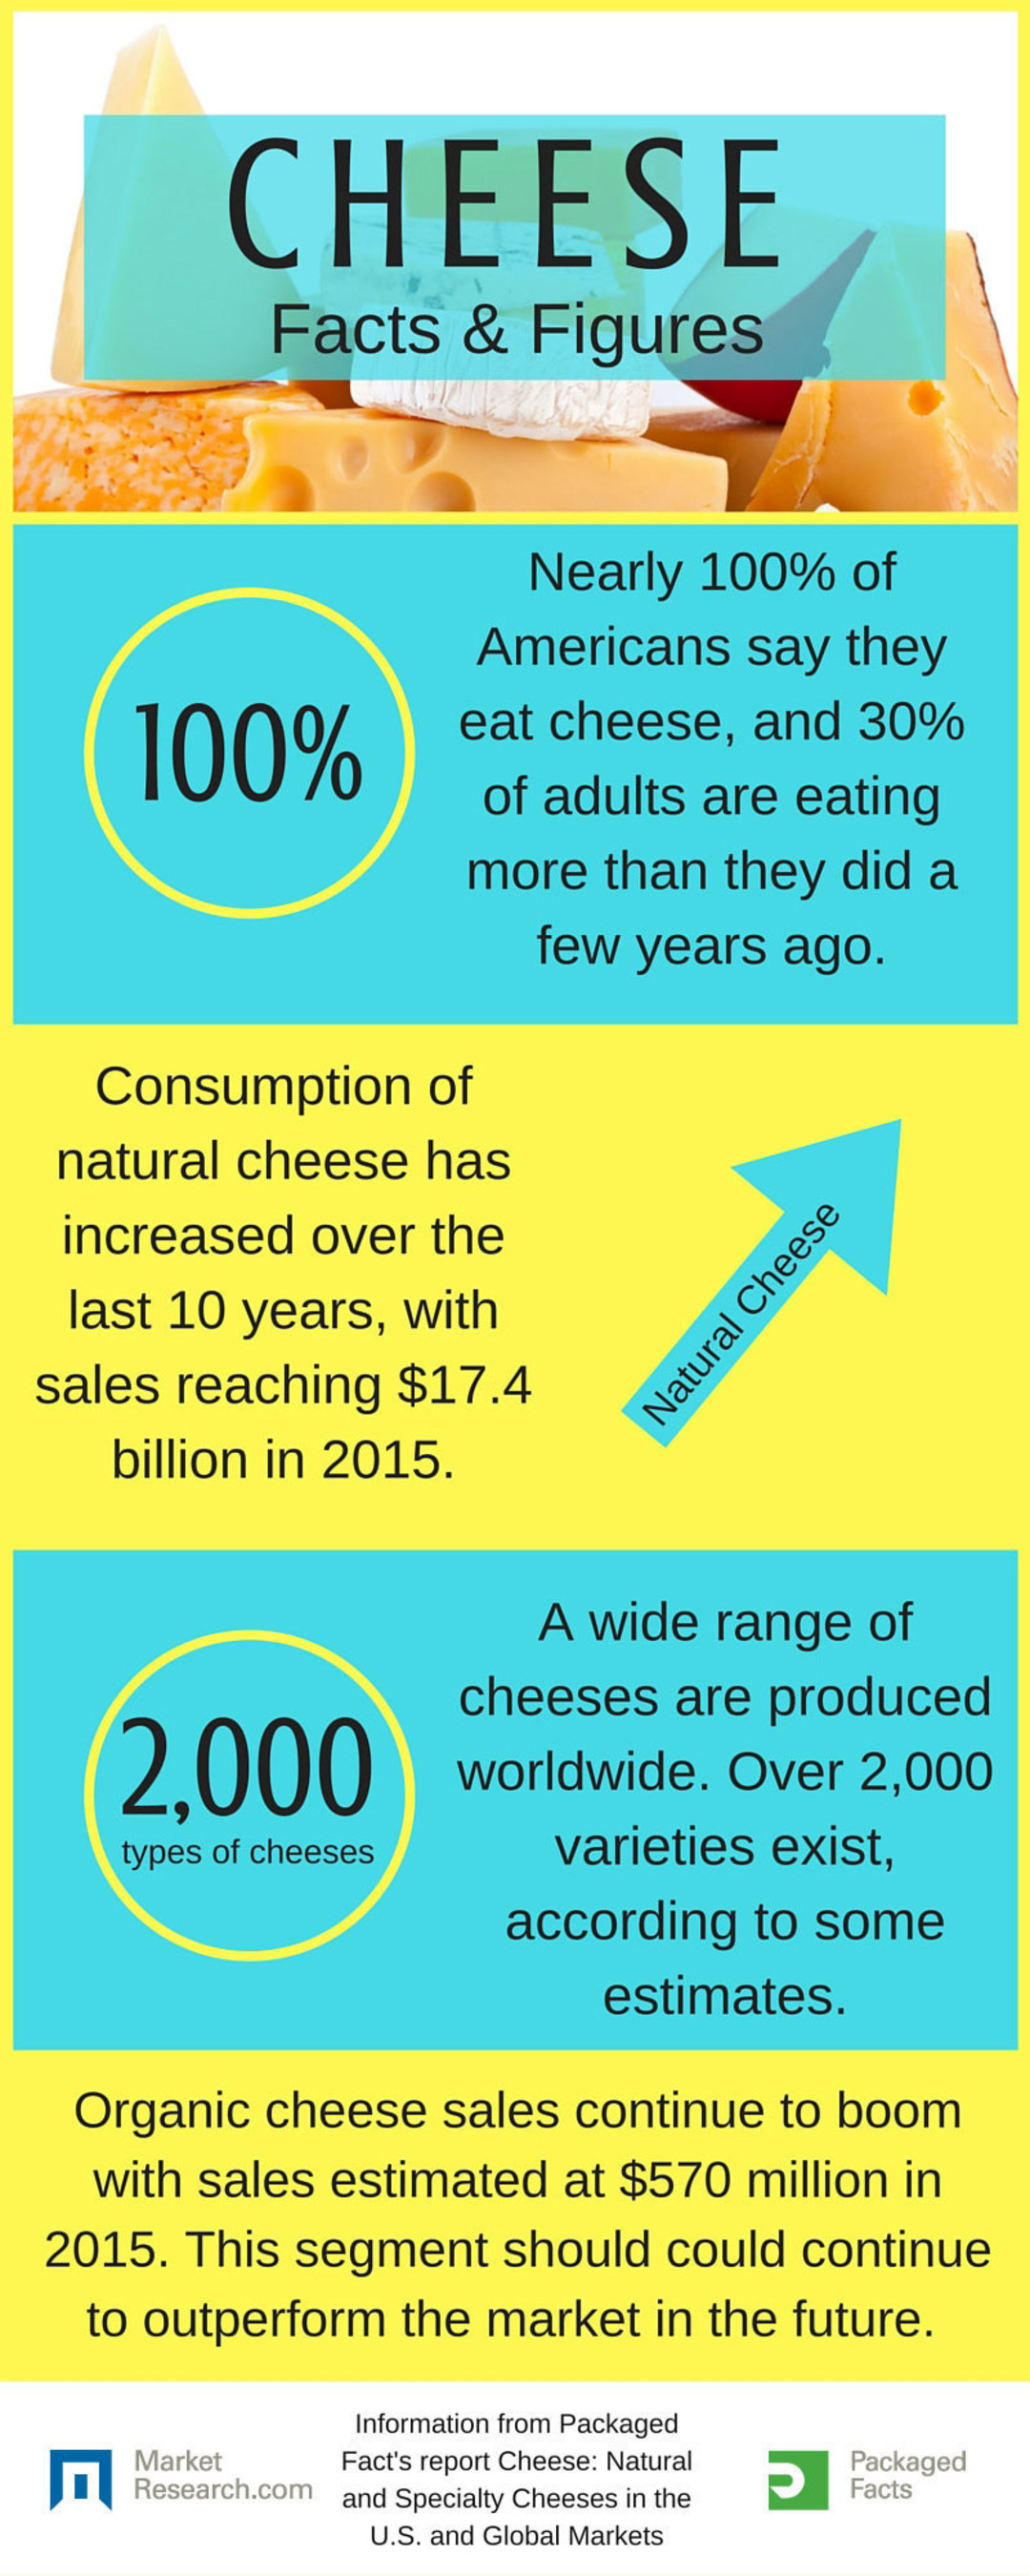 MarketResearch.com: Natural and Specialty Cheese Market Reaches $17 Billion [INFOGRAPHIC]